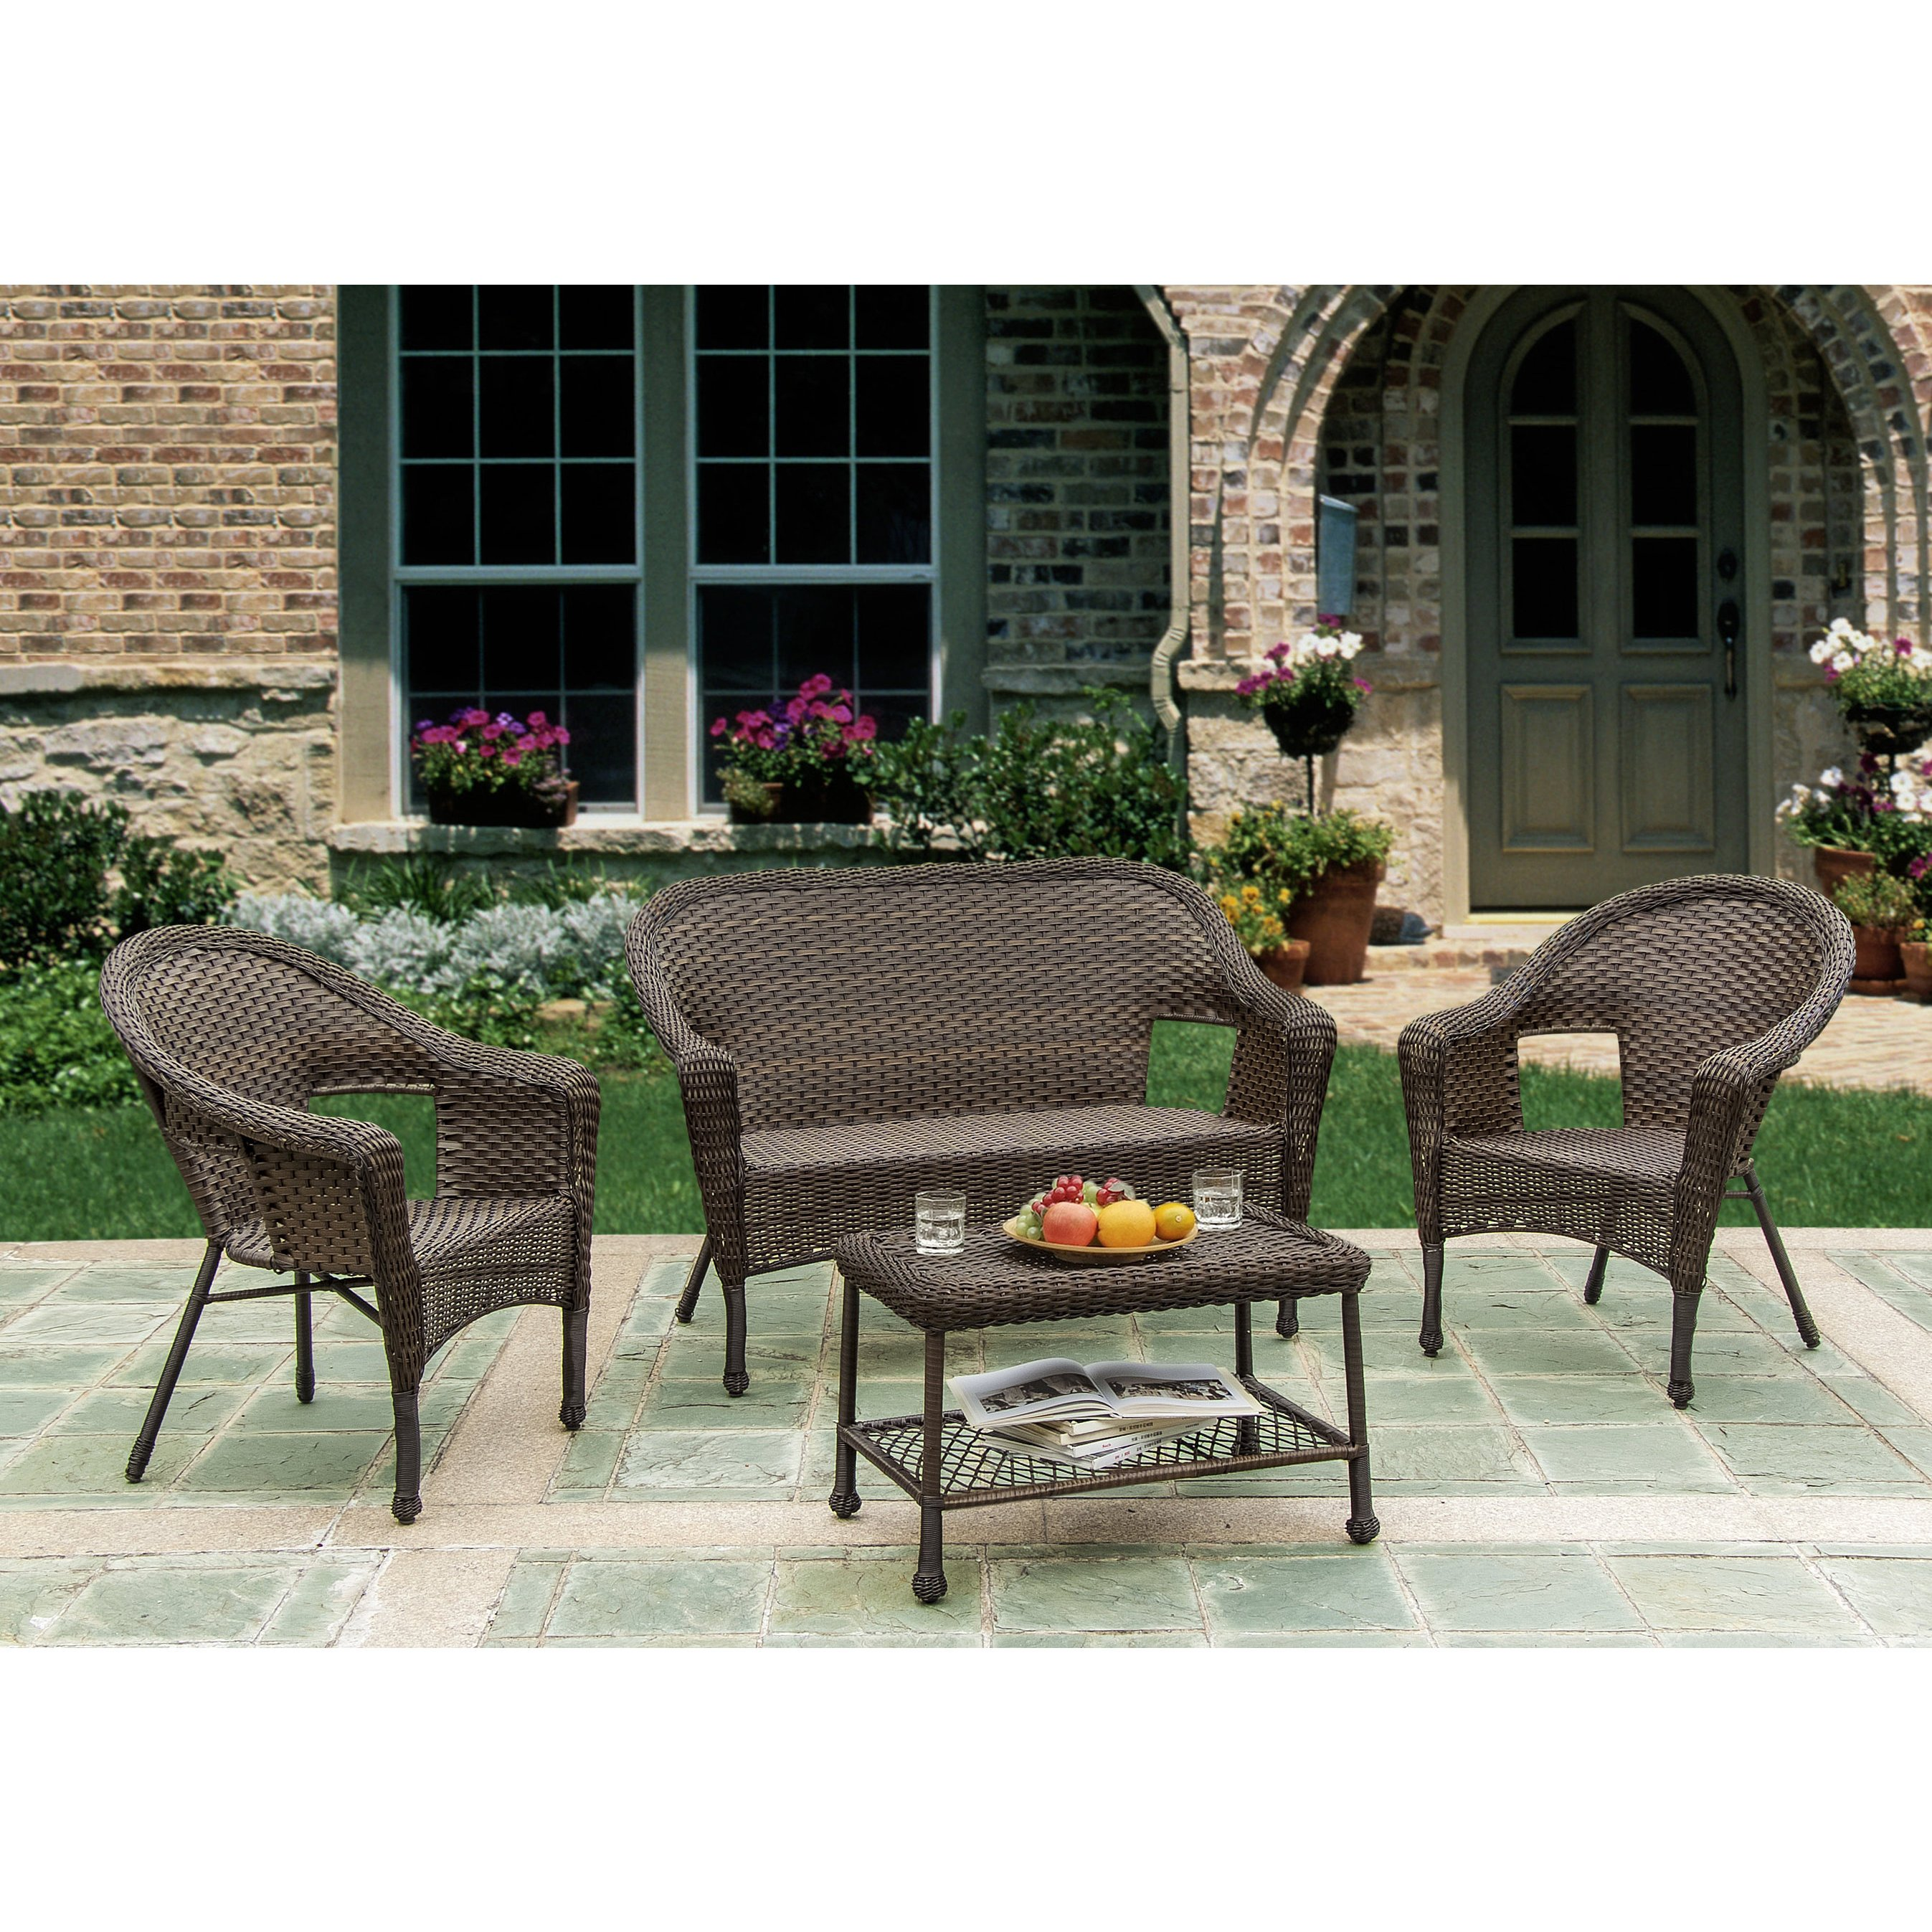 unlimited brown wicker piece outdoor furniture set free storage accent patio table shipping today over the couch shades light coupon glass floor lamp under worlds away round gold